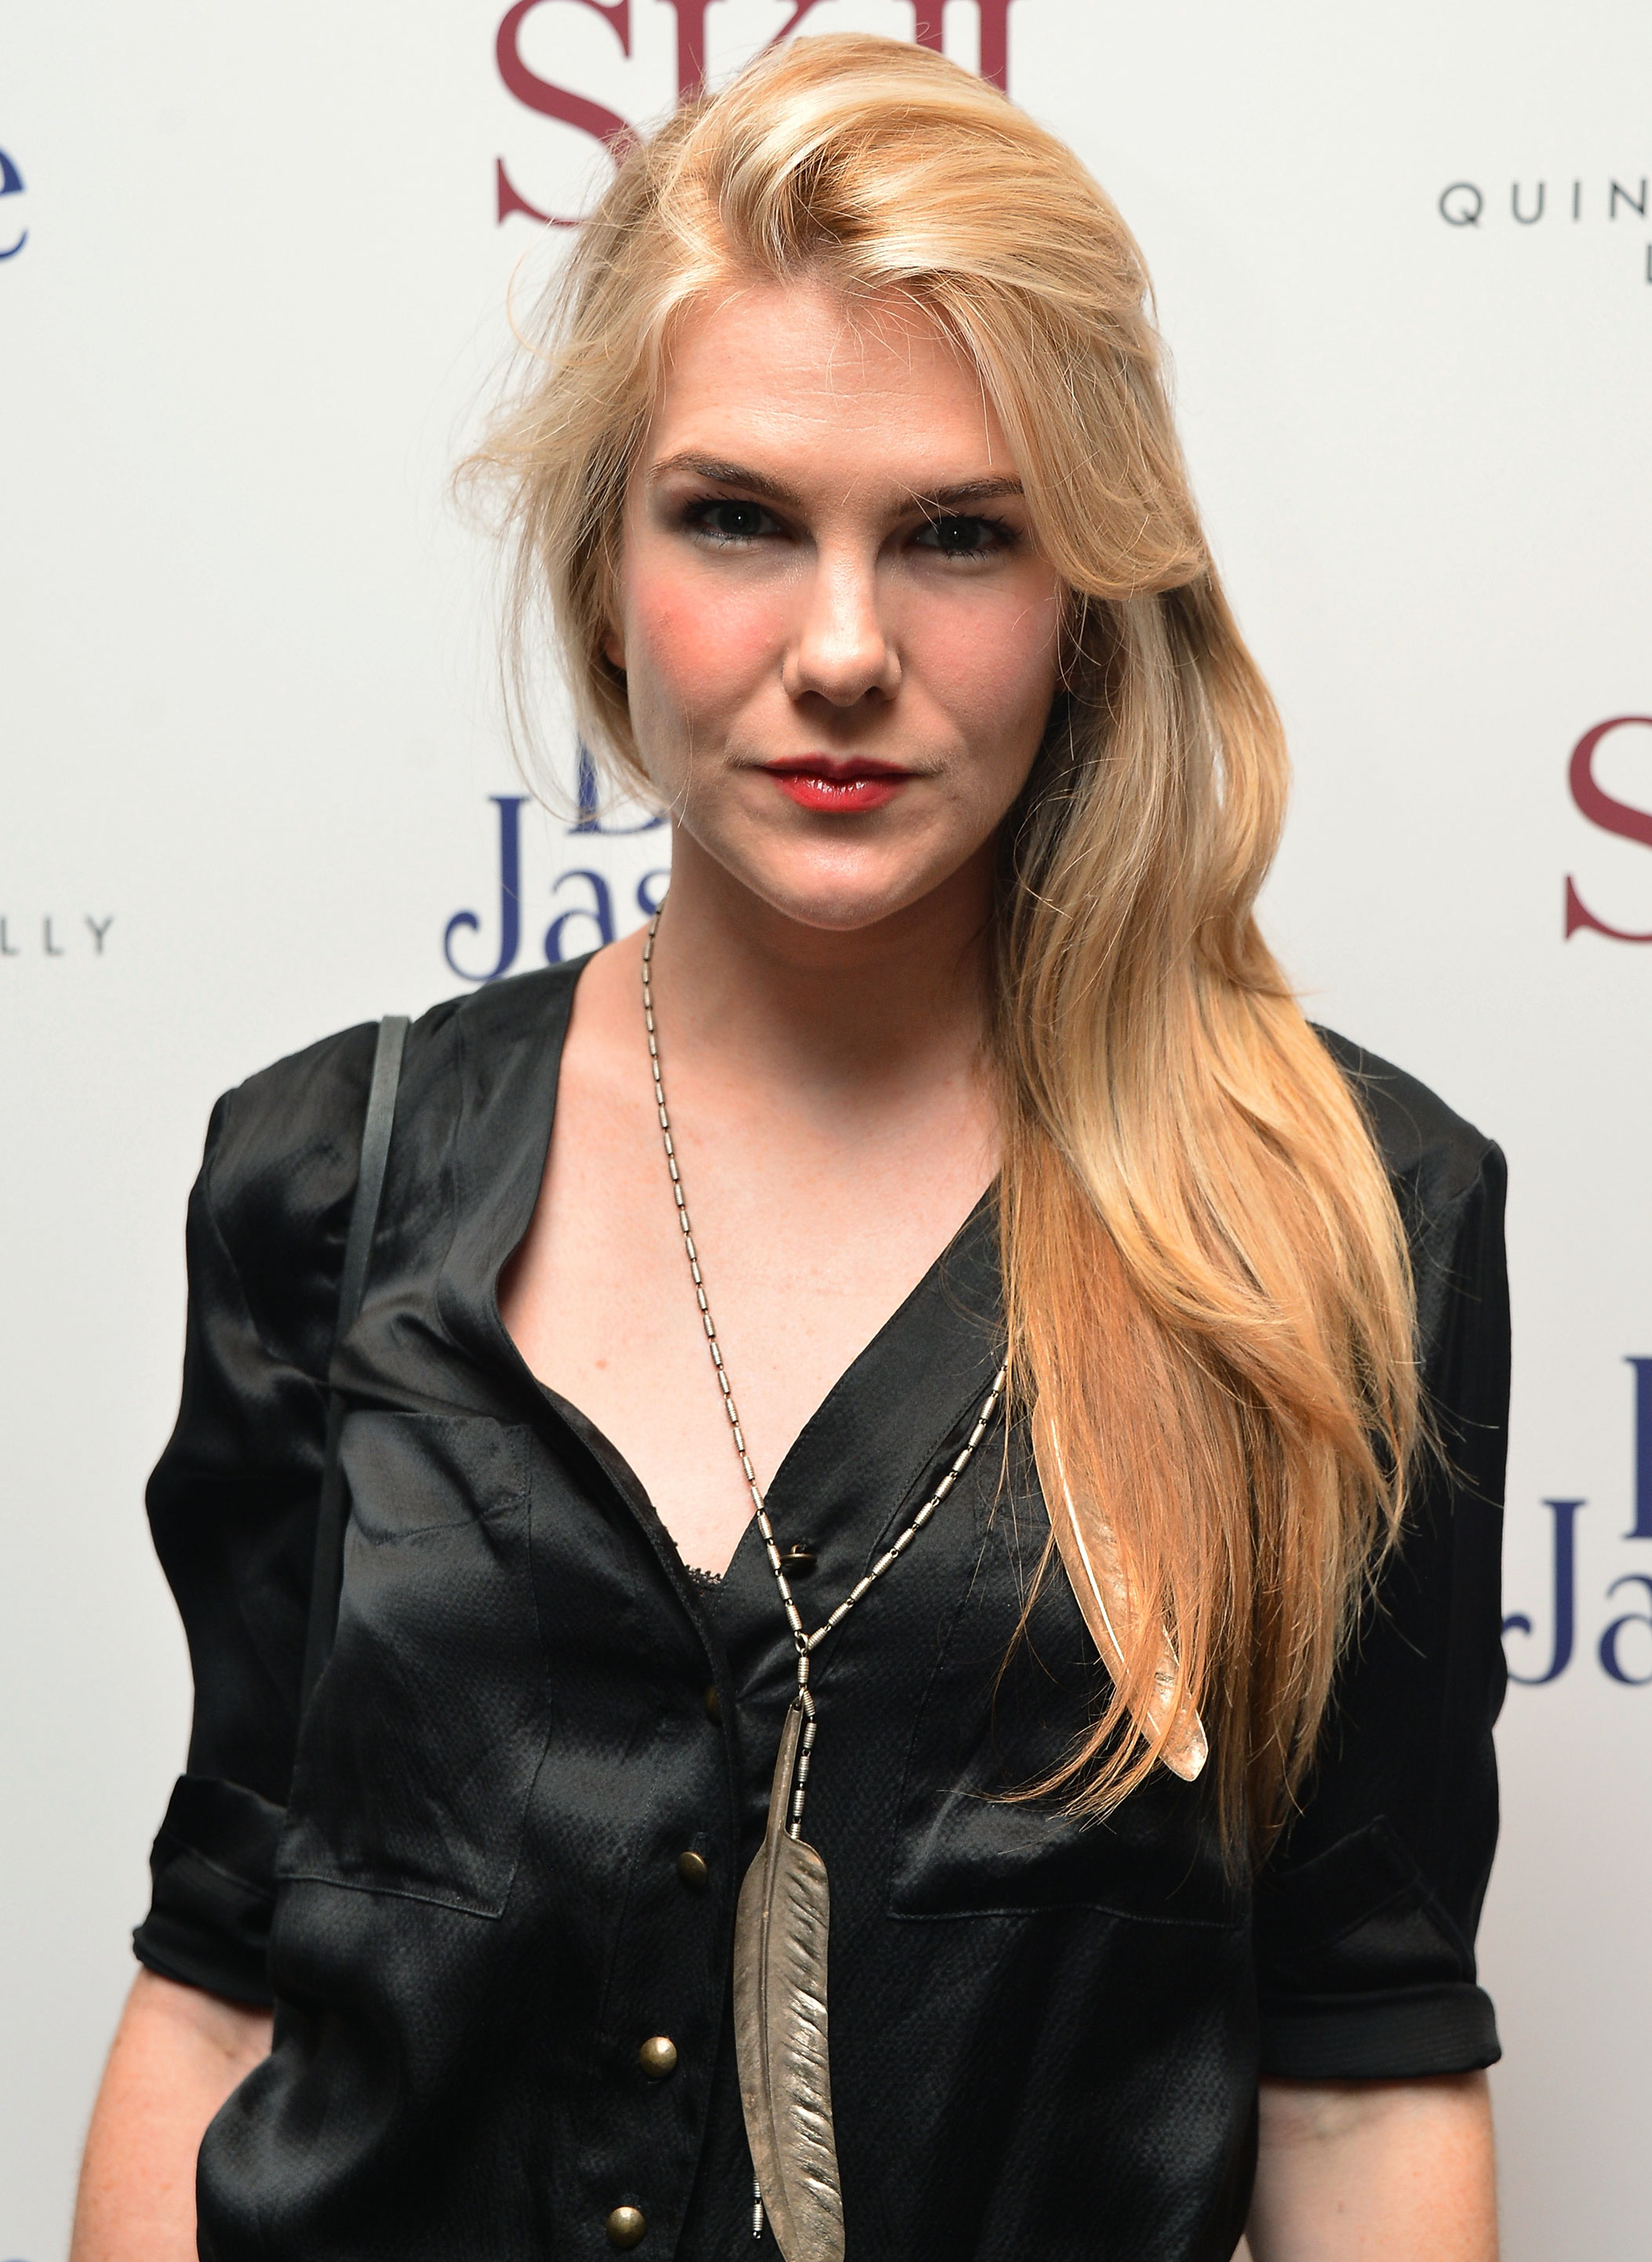 The 34-year old daughter of father David Rabe and mother Jill Clayburgh, 173 cm tall Lily Rabe in 2017 photo